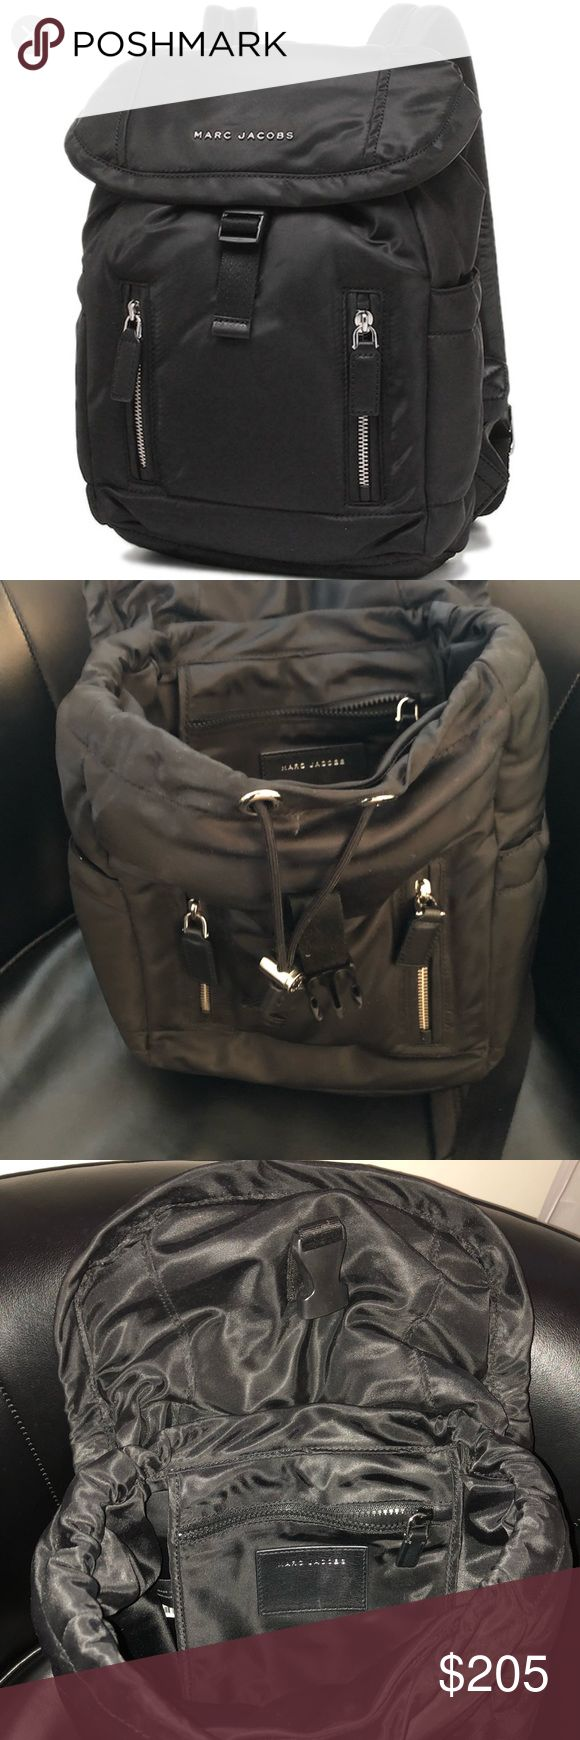 Marc Jacob's Drawstring/Clip Backpack -Marc Jacob's Drawstring Backpack  -Excellent condition  -Nylon material  -Top handle -2 front zip pockets -2 side water bottle compartments  -Zip pocket inside with logo  -Drawstring gathers top and also buckles for added security  -Material is jet black but it was hard to portray in a picture Marc By Marc Jacobs Bags Backpacks